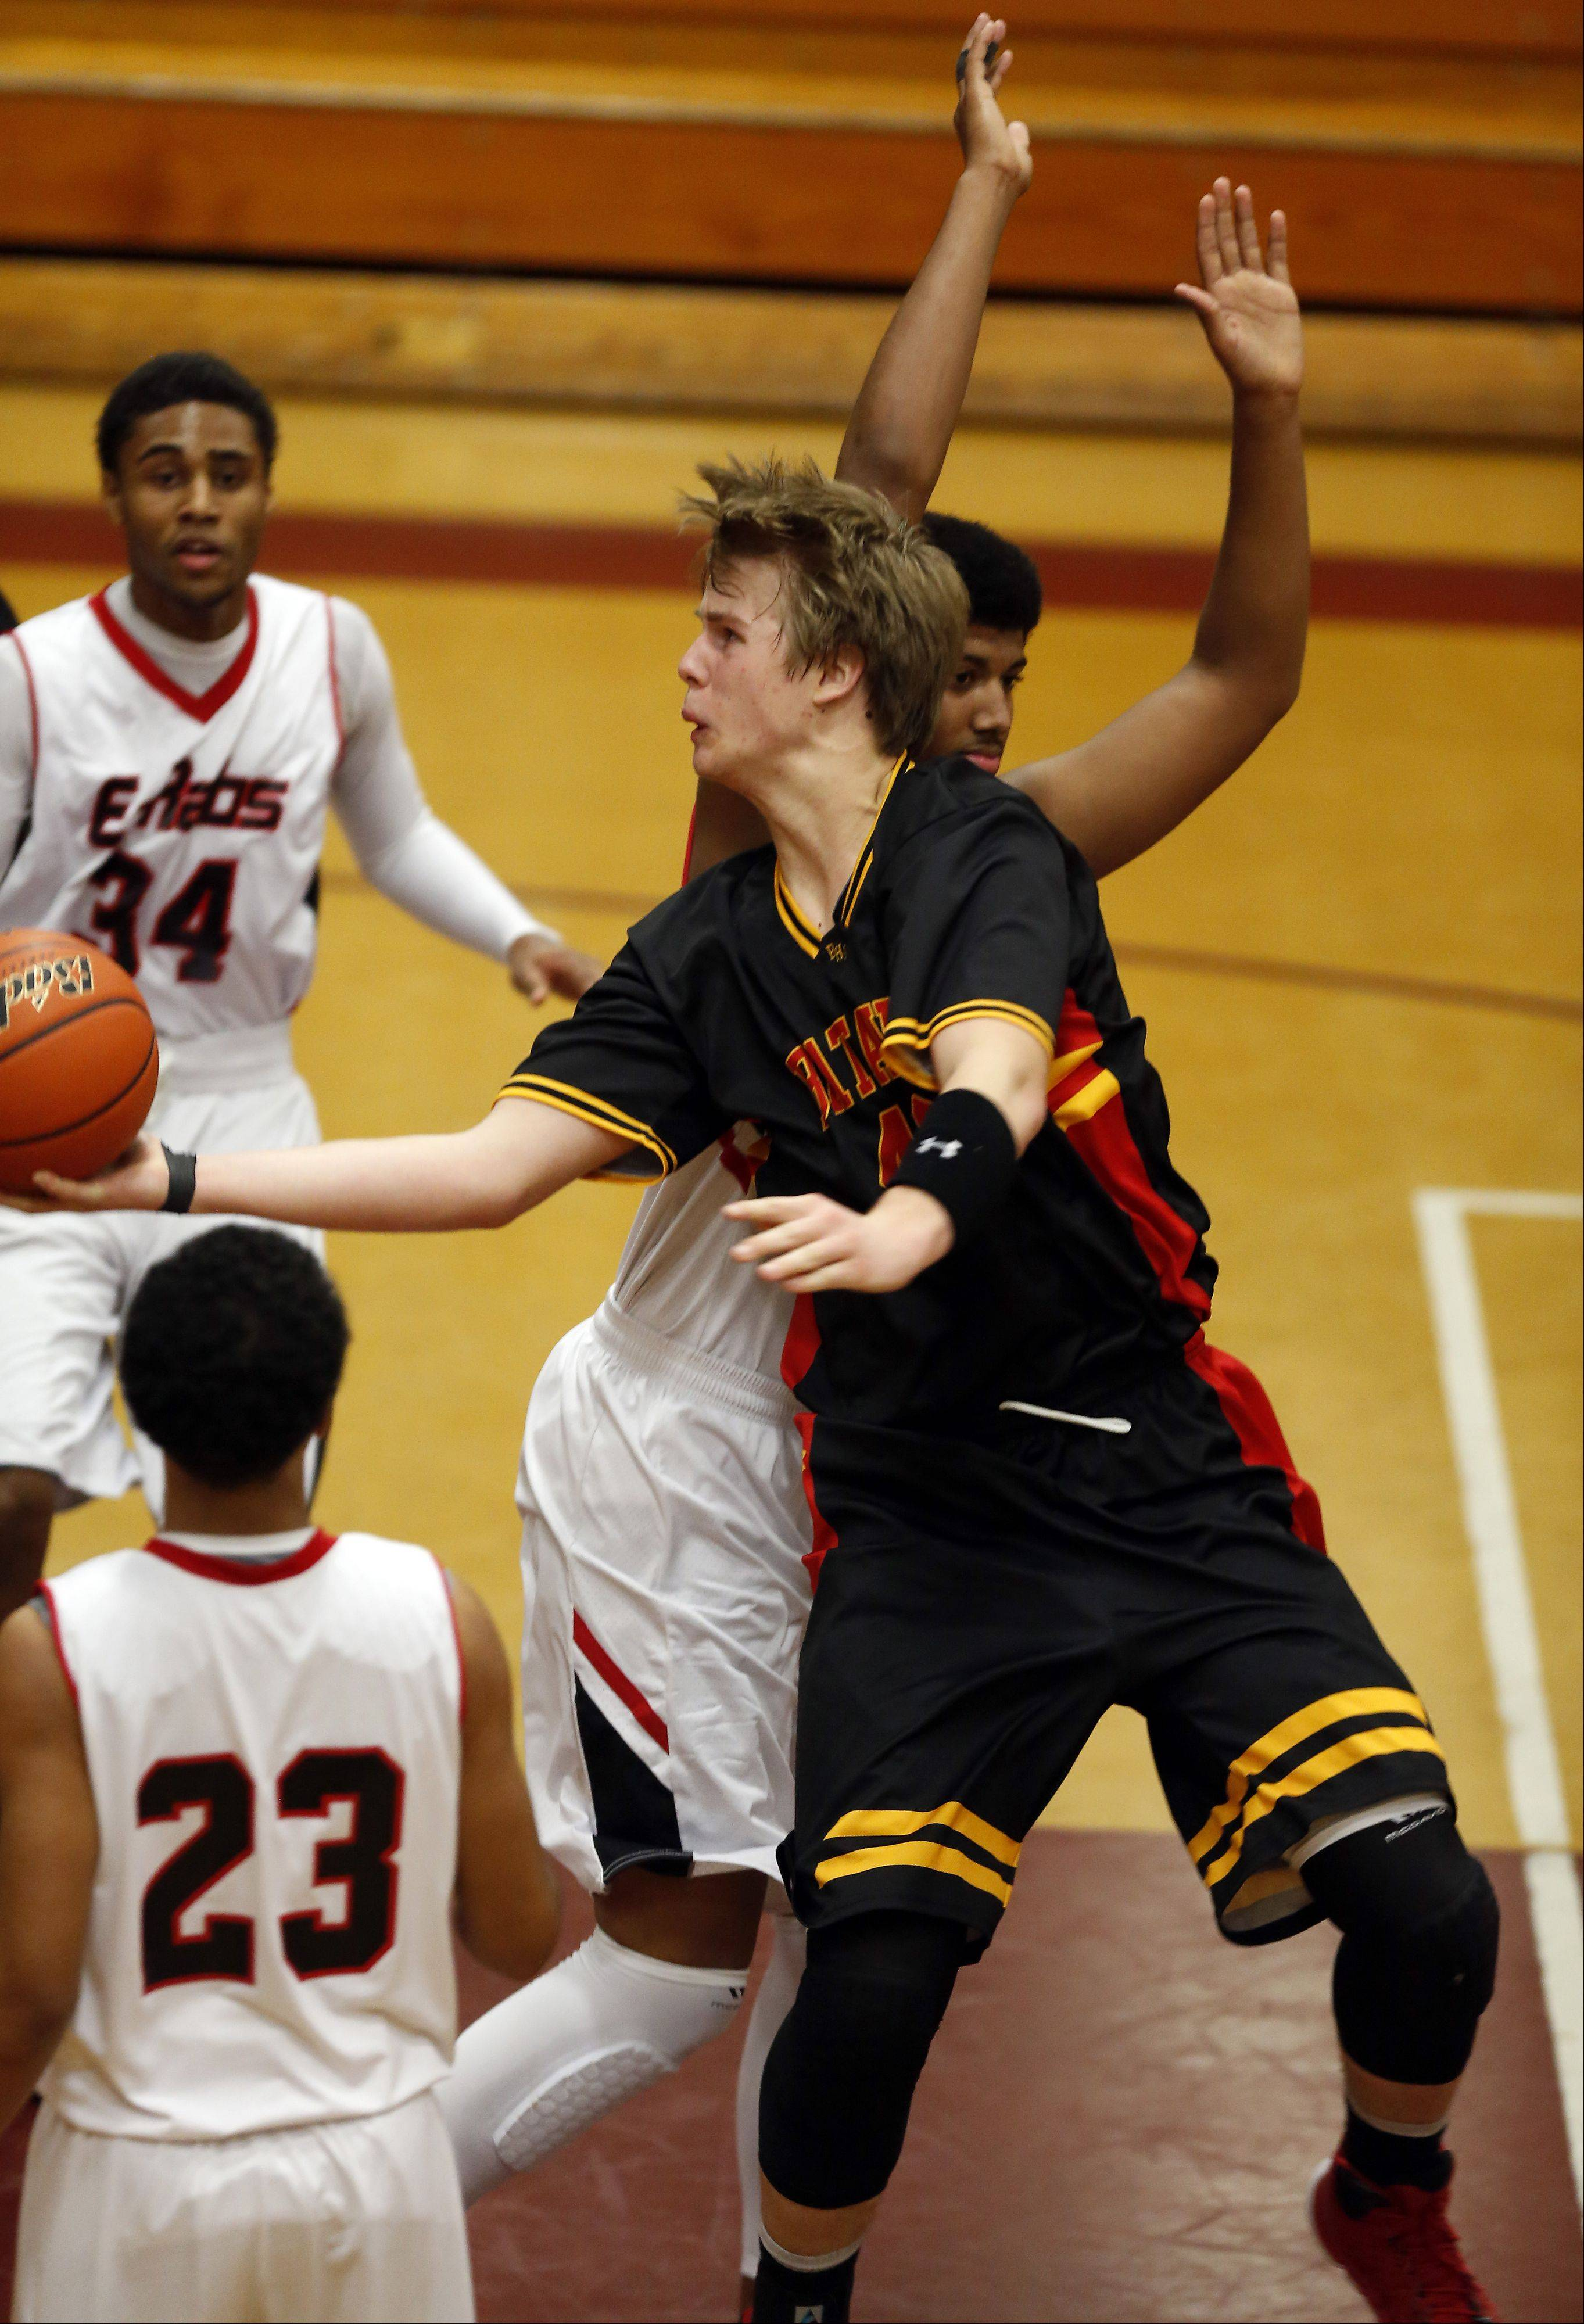 Batavia's Chasen Peez goes strong to the hoop past Rockford East's Bryant Nolan at the 39th Annual Elgin Boys Holiday Basketball Tournament at Elgin High School on Saturday.